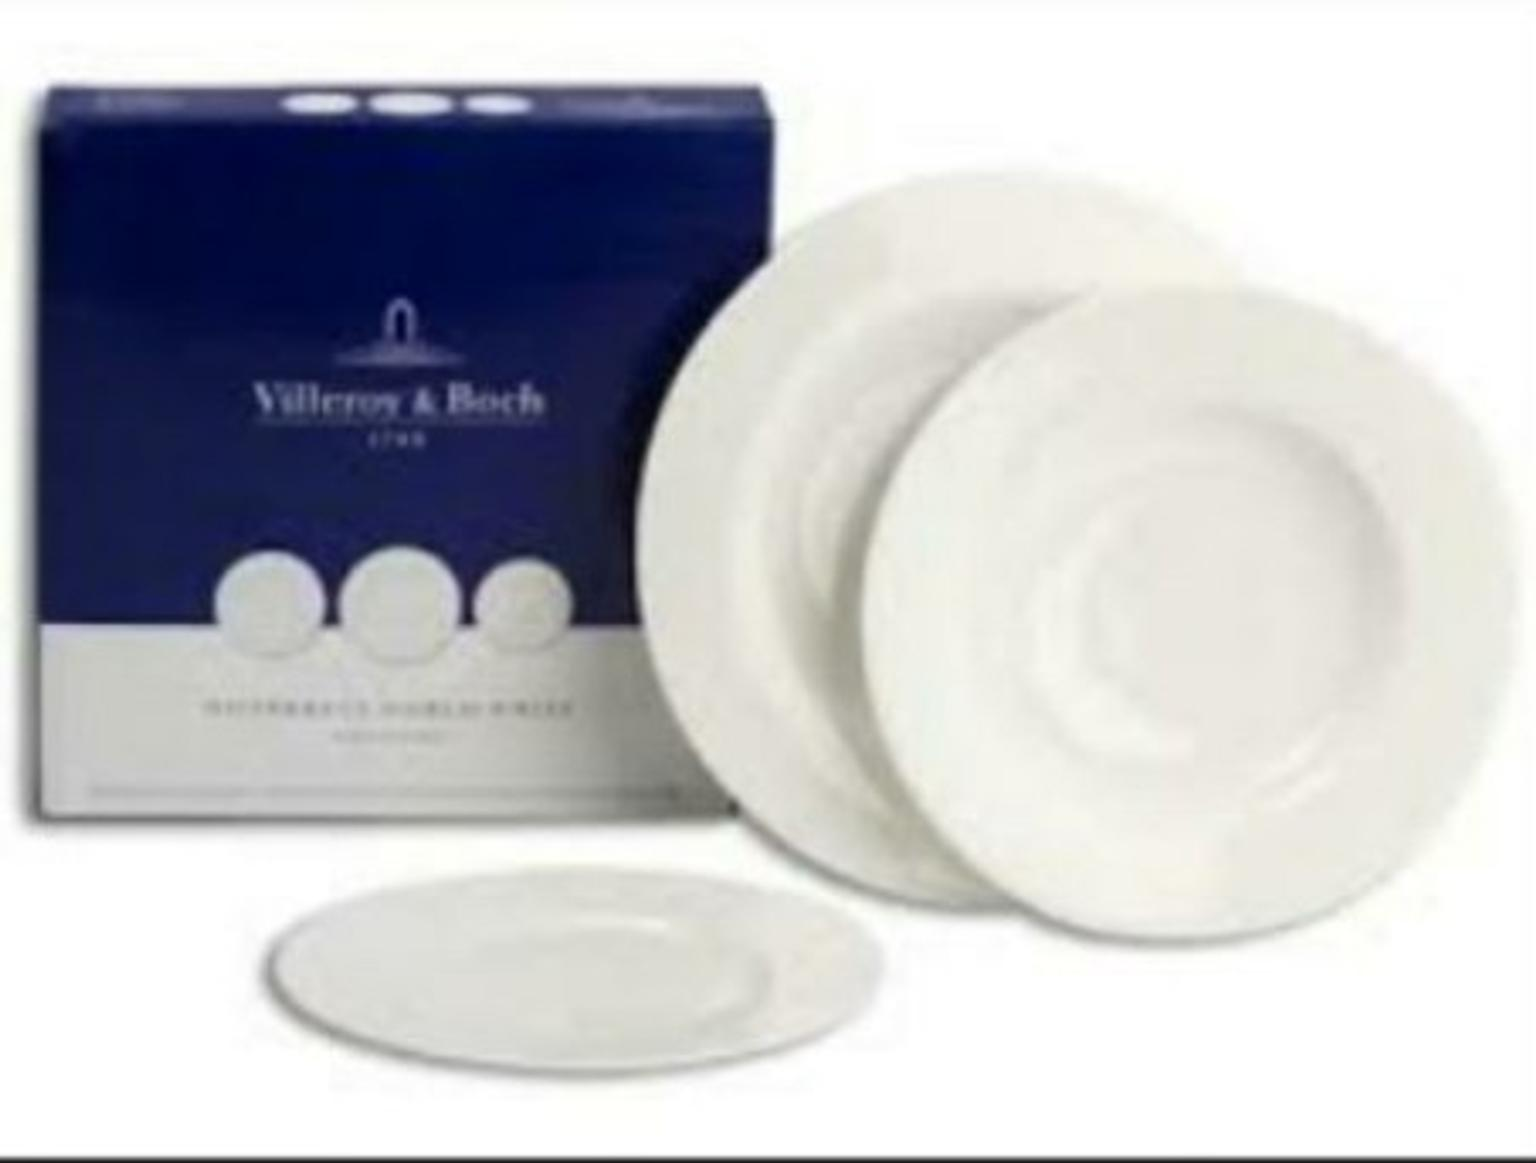 Villeroy E Boch Piatti.Piatti Villeroy E Boch In 20134 Milano For 130 00 For Sale Shpock